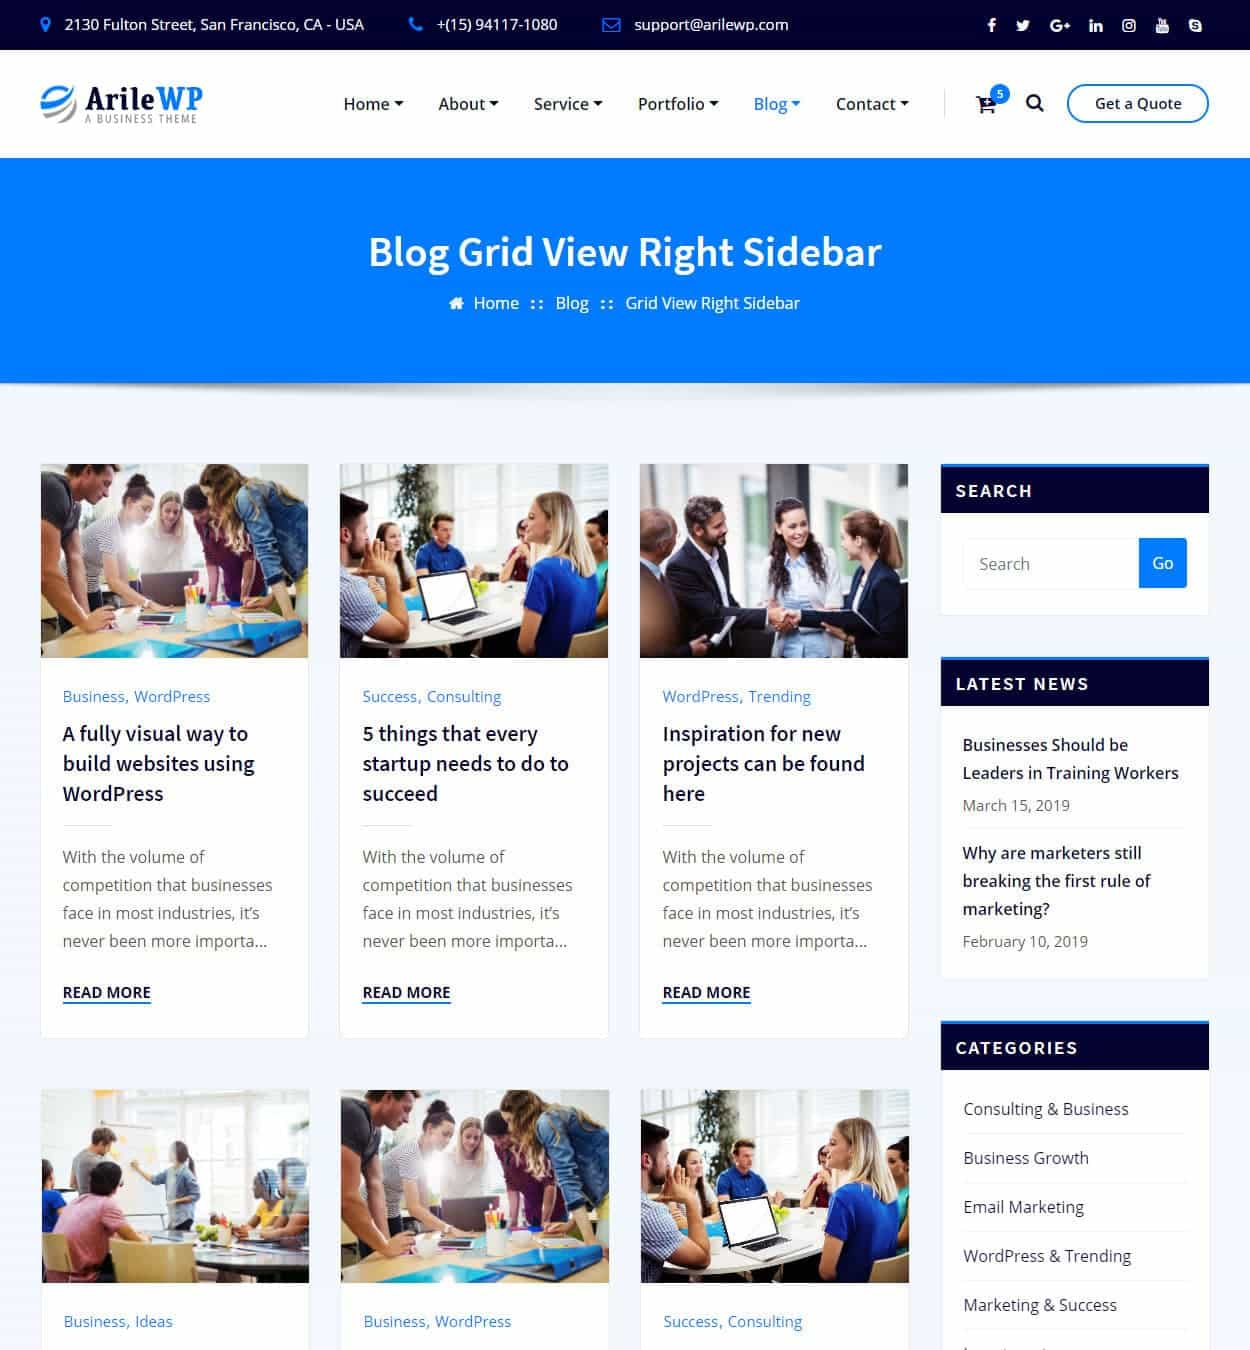 Blog Grid View Right Sidebar